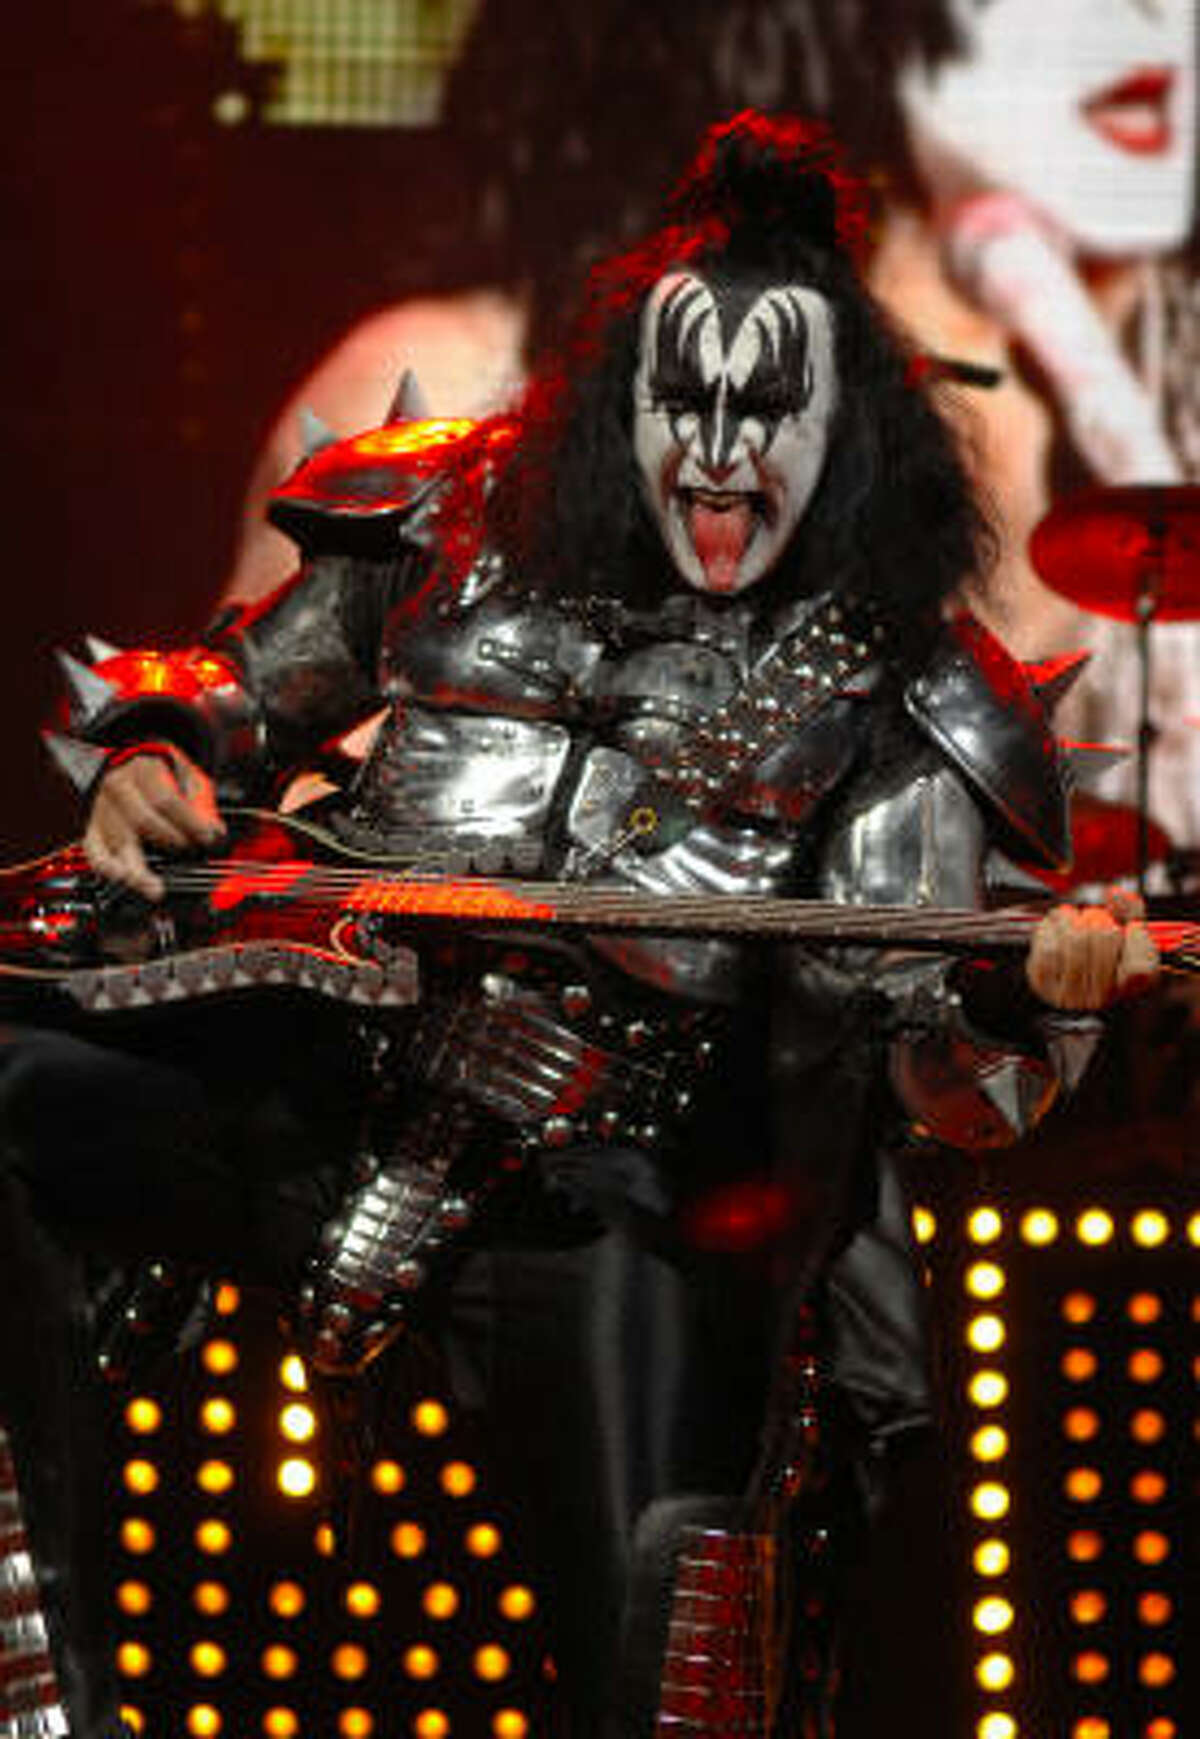 What would a KISS show be without Gene Simmons' tongue? Read a review of the show here.